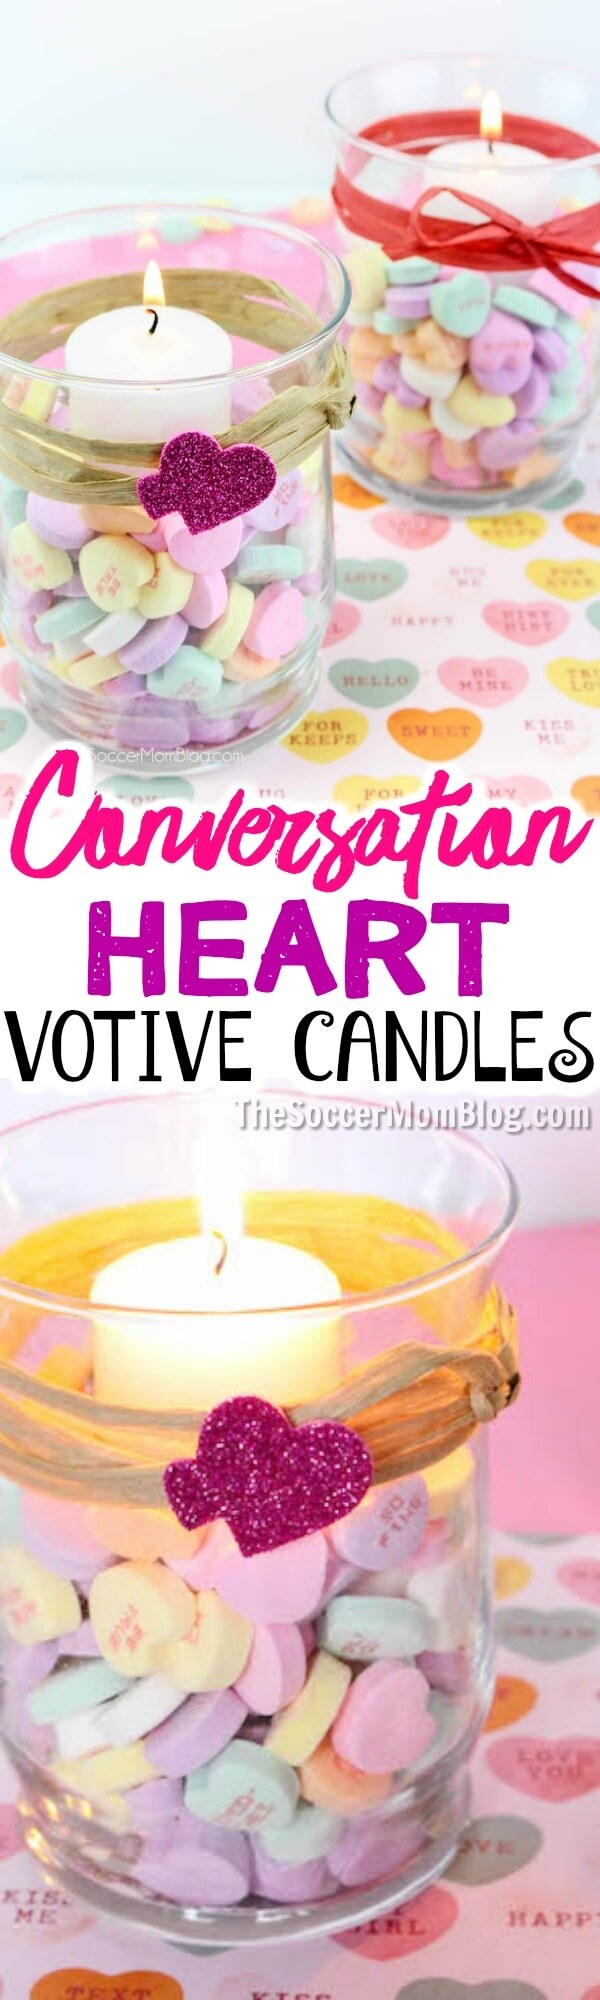 These easy Conversation Heart Votives are a cute homemade Valentine's Day gift, or a unique way to add a festive touch to your home. #valentinesday #crafts #kidscrafts